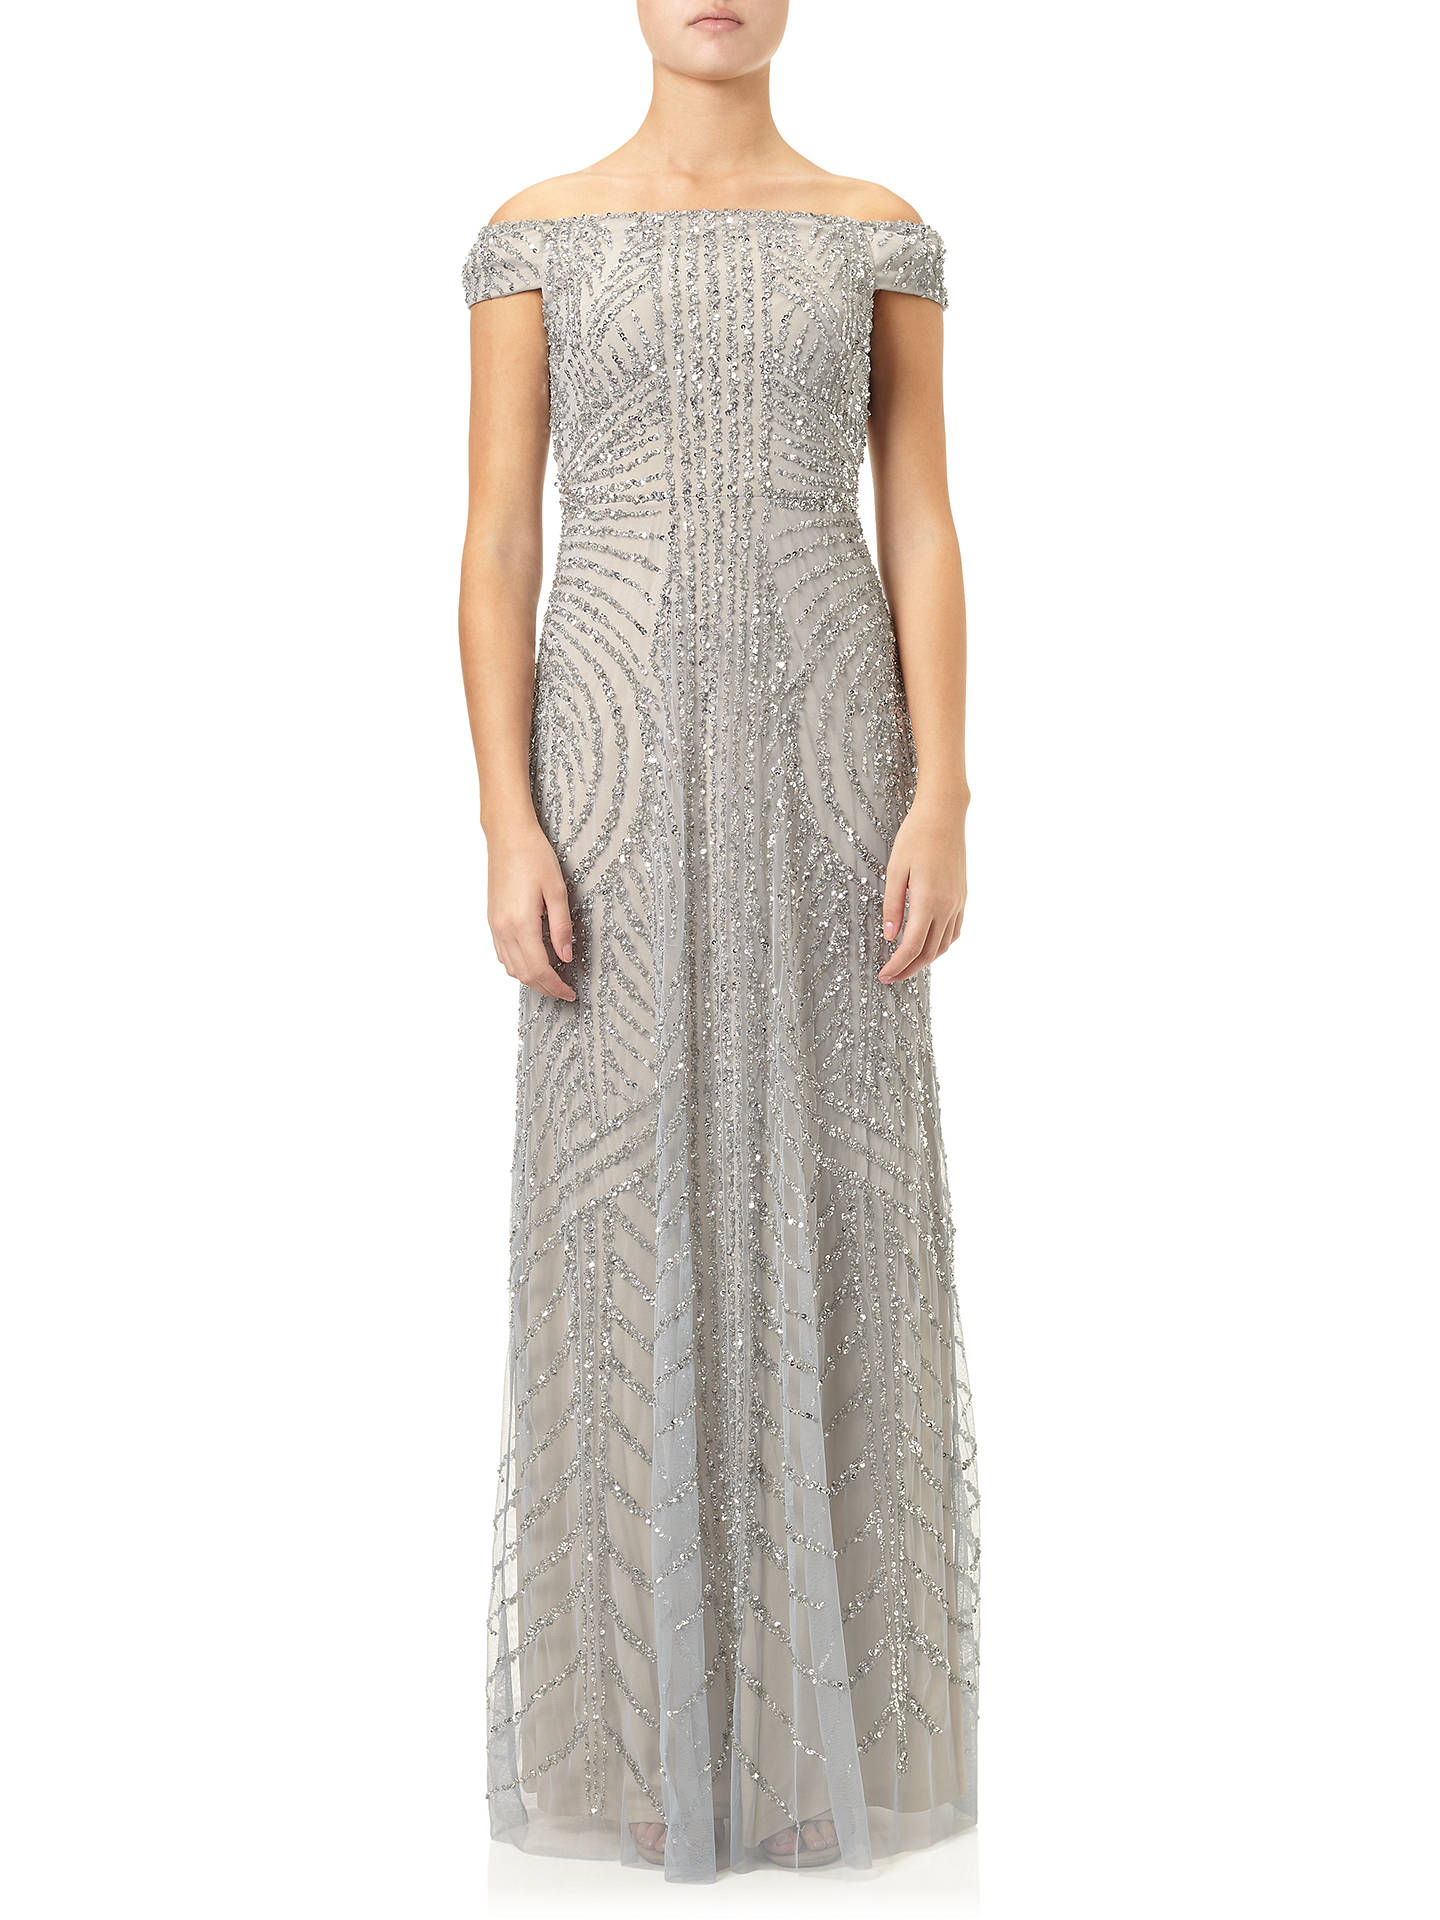 7281f7747fac Buy Adrianna Papell Off Shoulder Beaded Gown